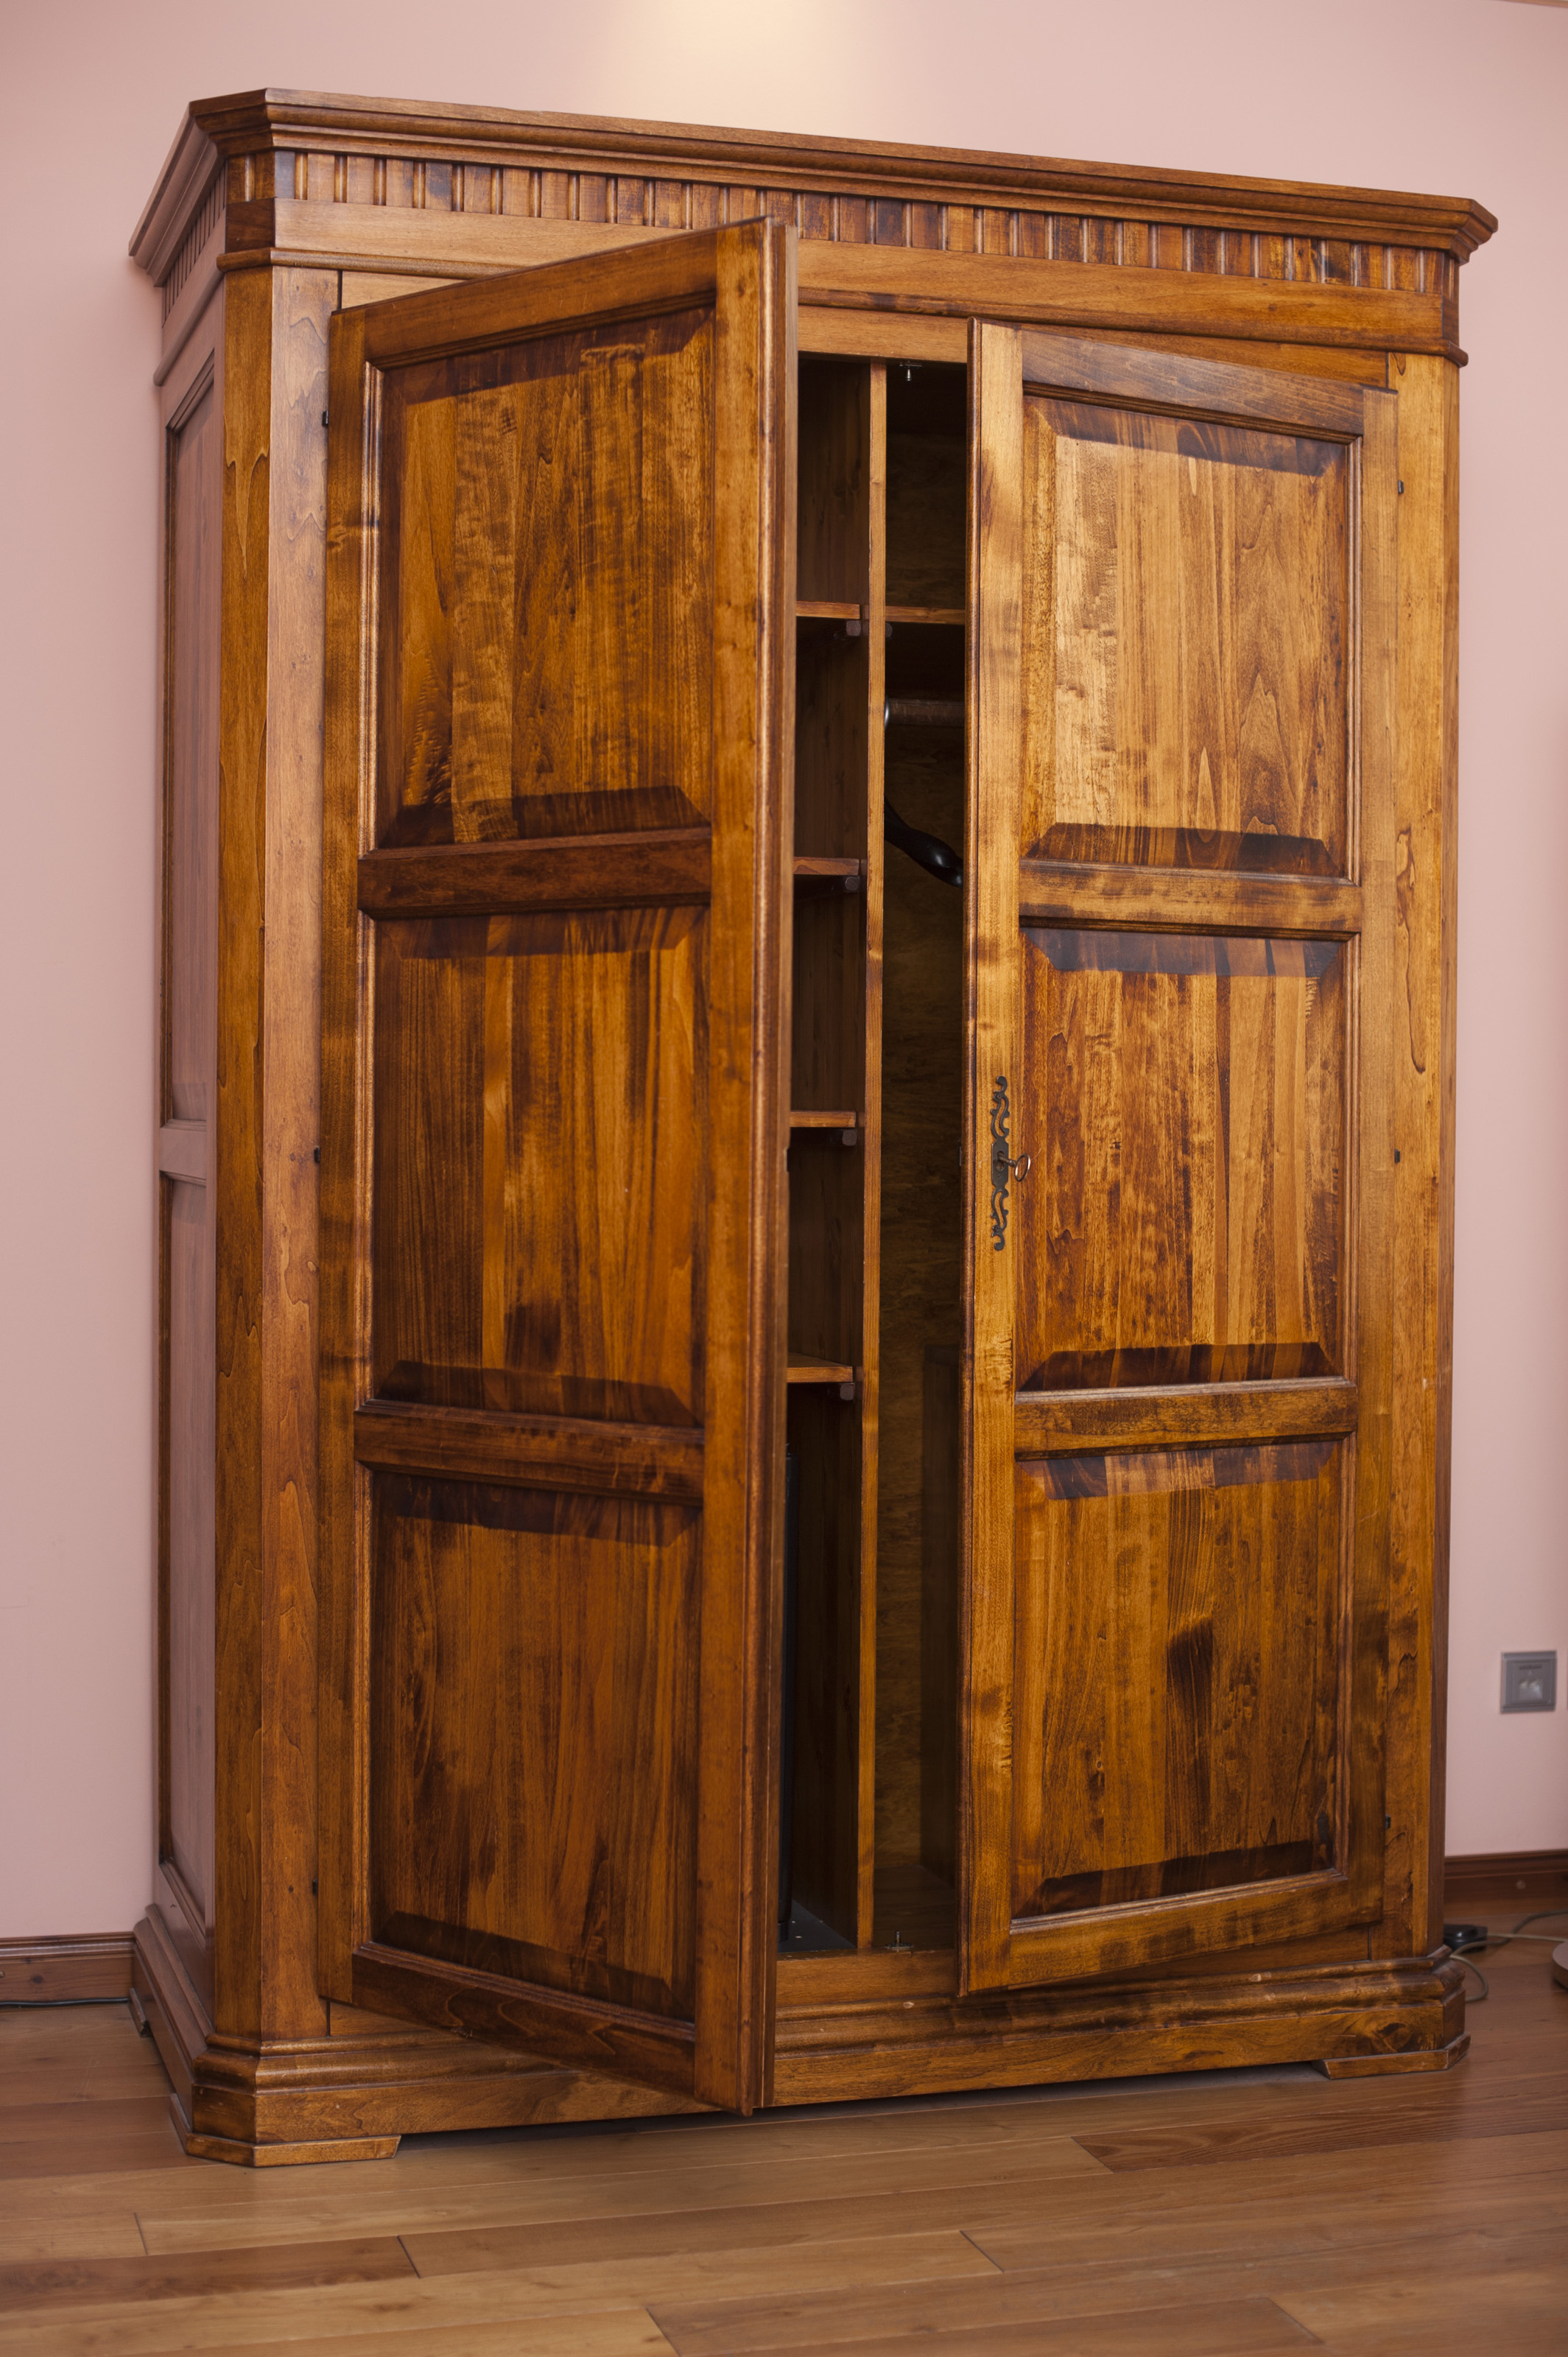 Free Stock Photo Large Old Rustic Wooden Wardrobe